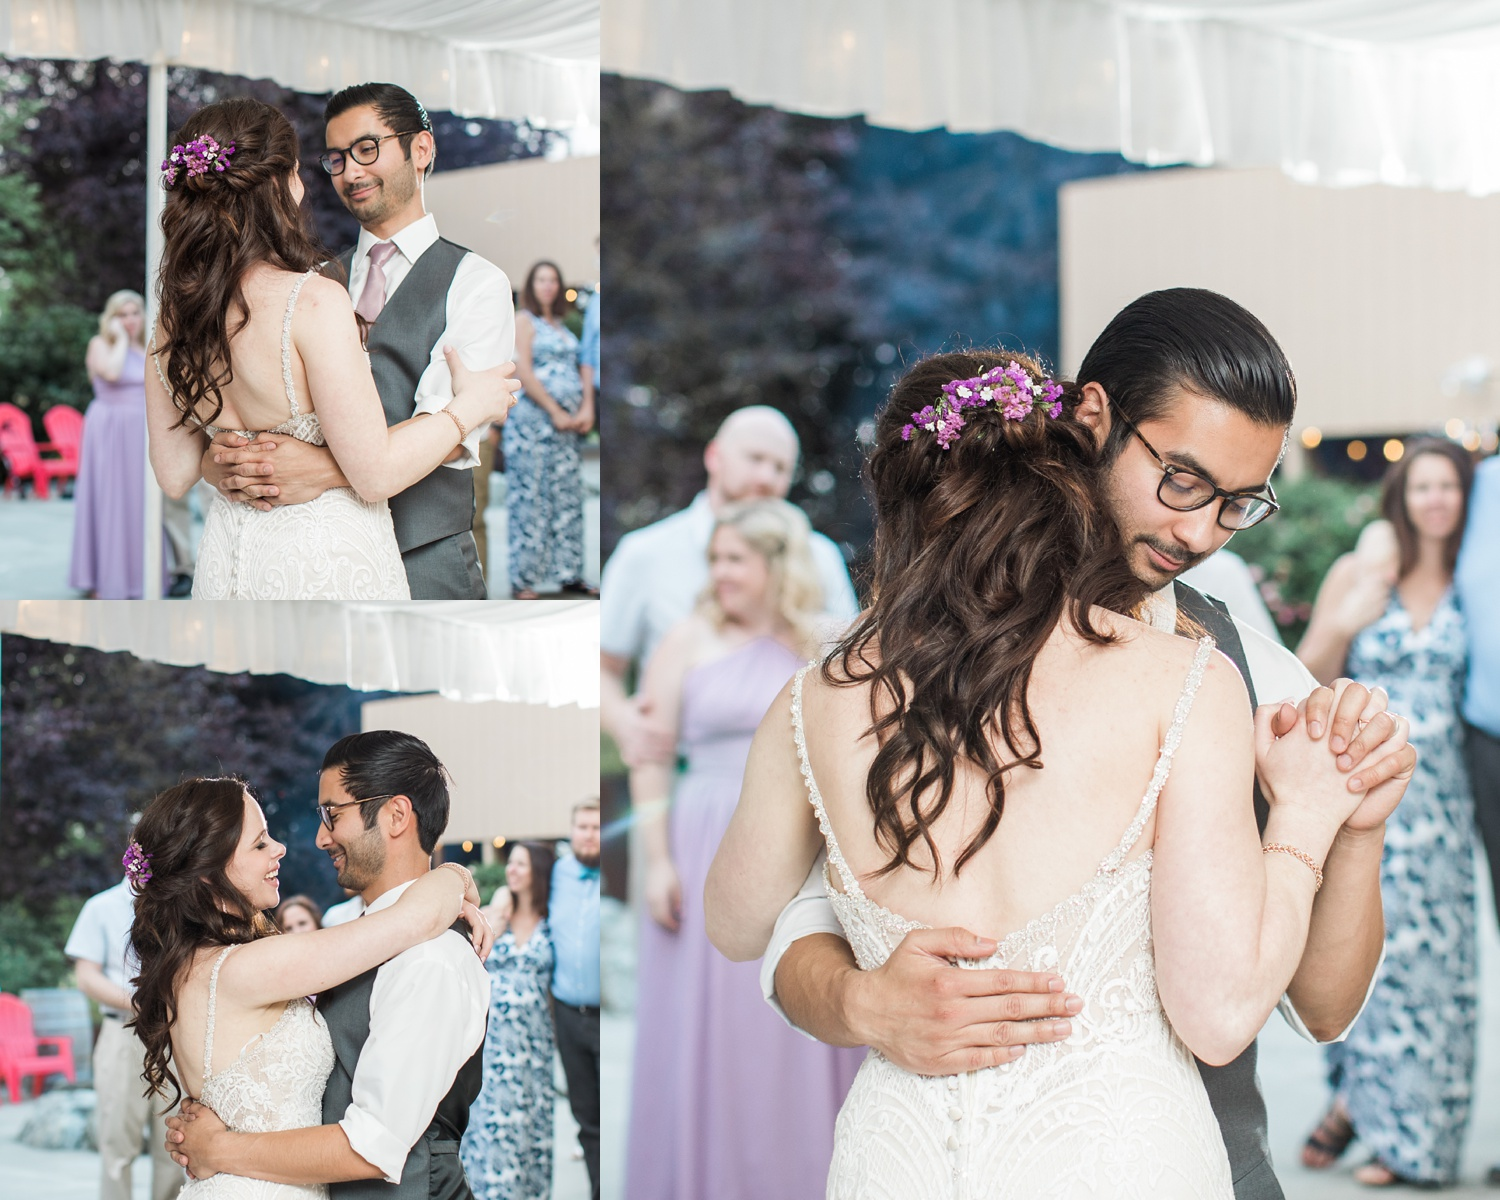 A bride and groom share their first dance during a wedding at Woodland Meadow Farms in Snohomish, a wedding venue near Seattle, WA. | Joanna Monger Photography | Seattle & Snohomish Photographer